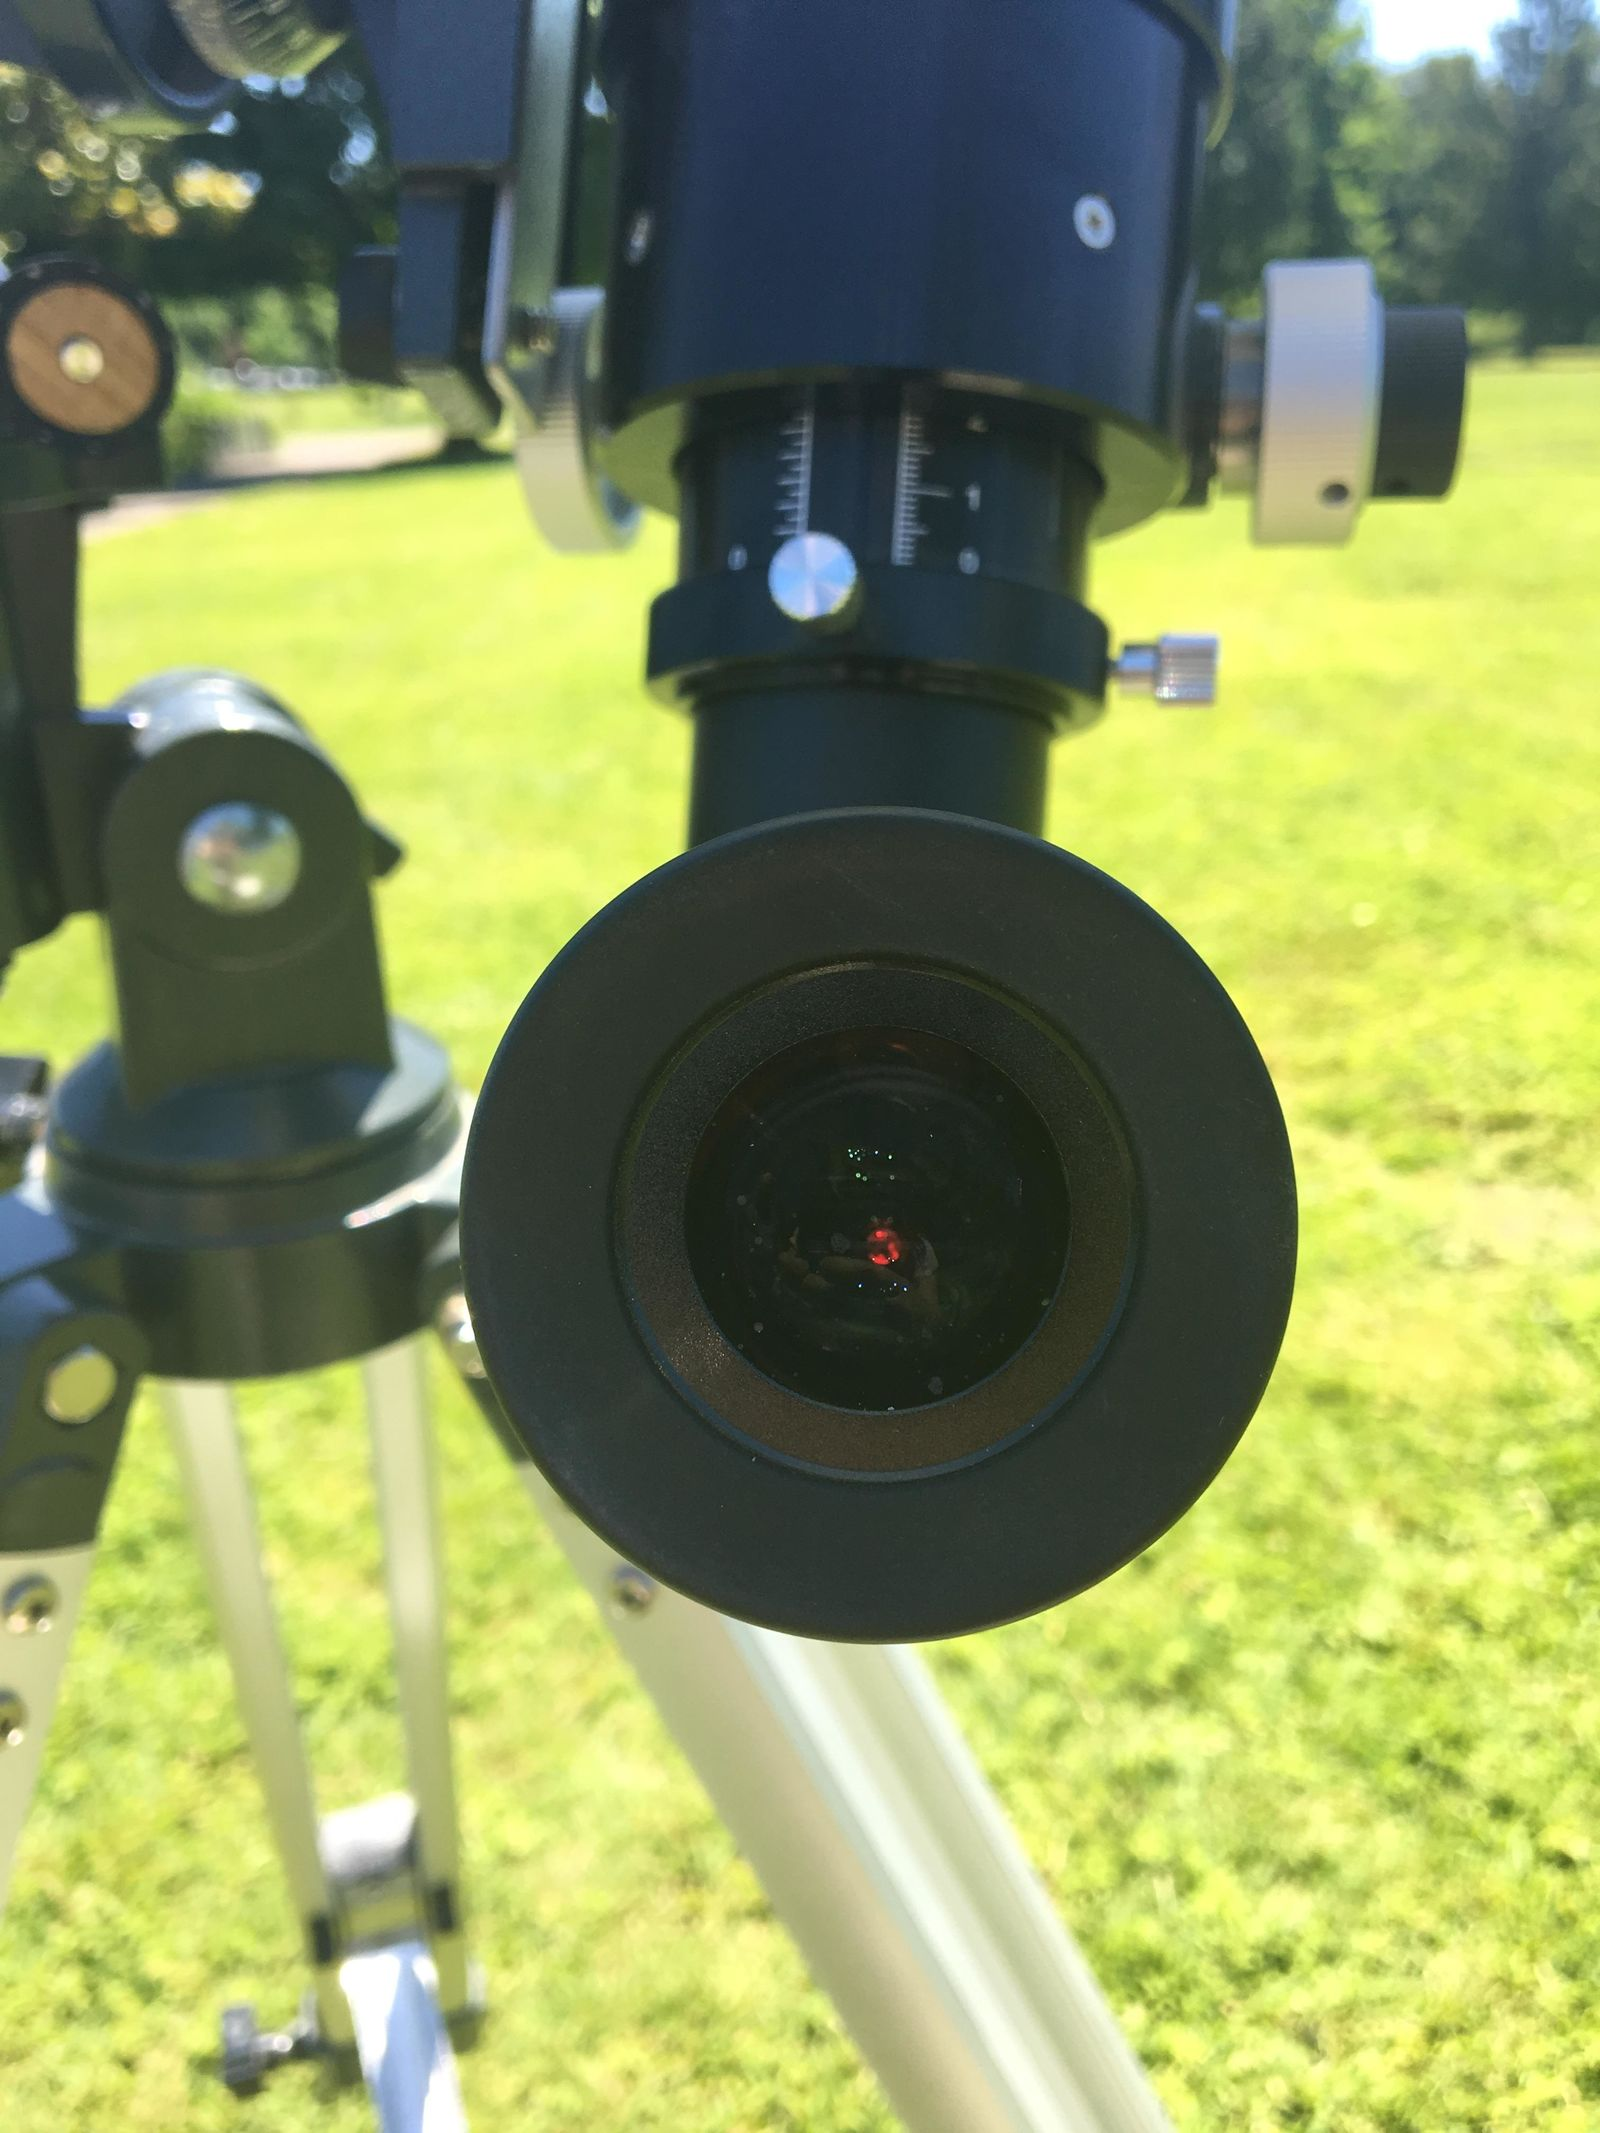 Star gazers gather in Alton Baker Park for solar viewing on Sun-day